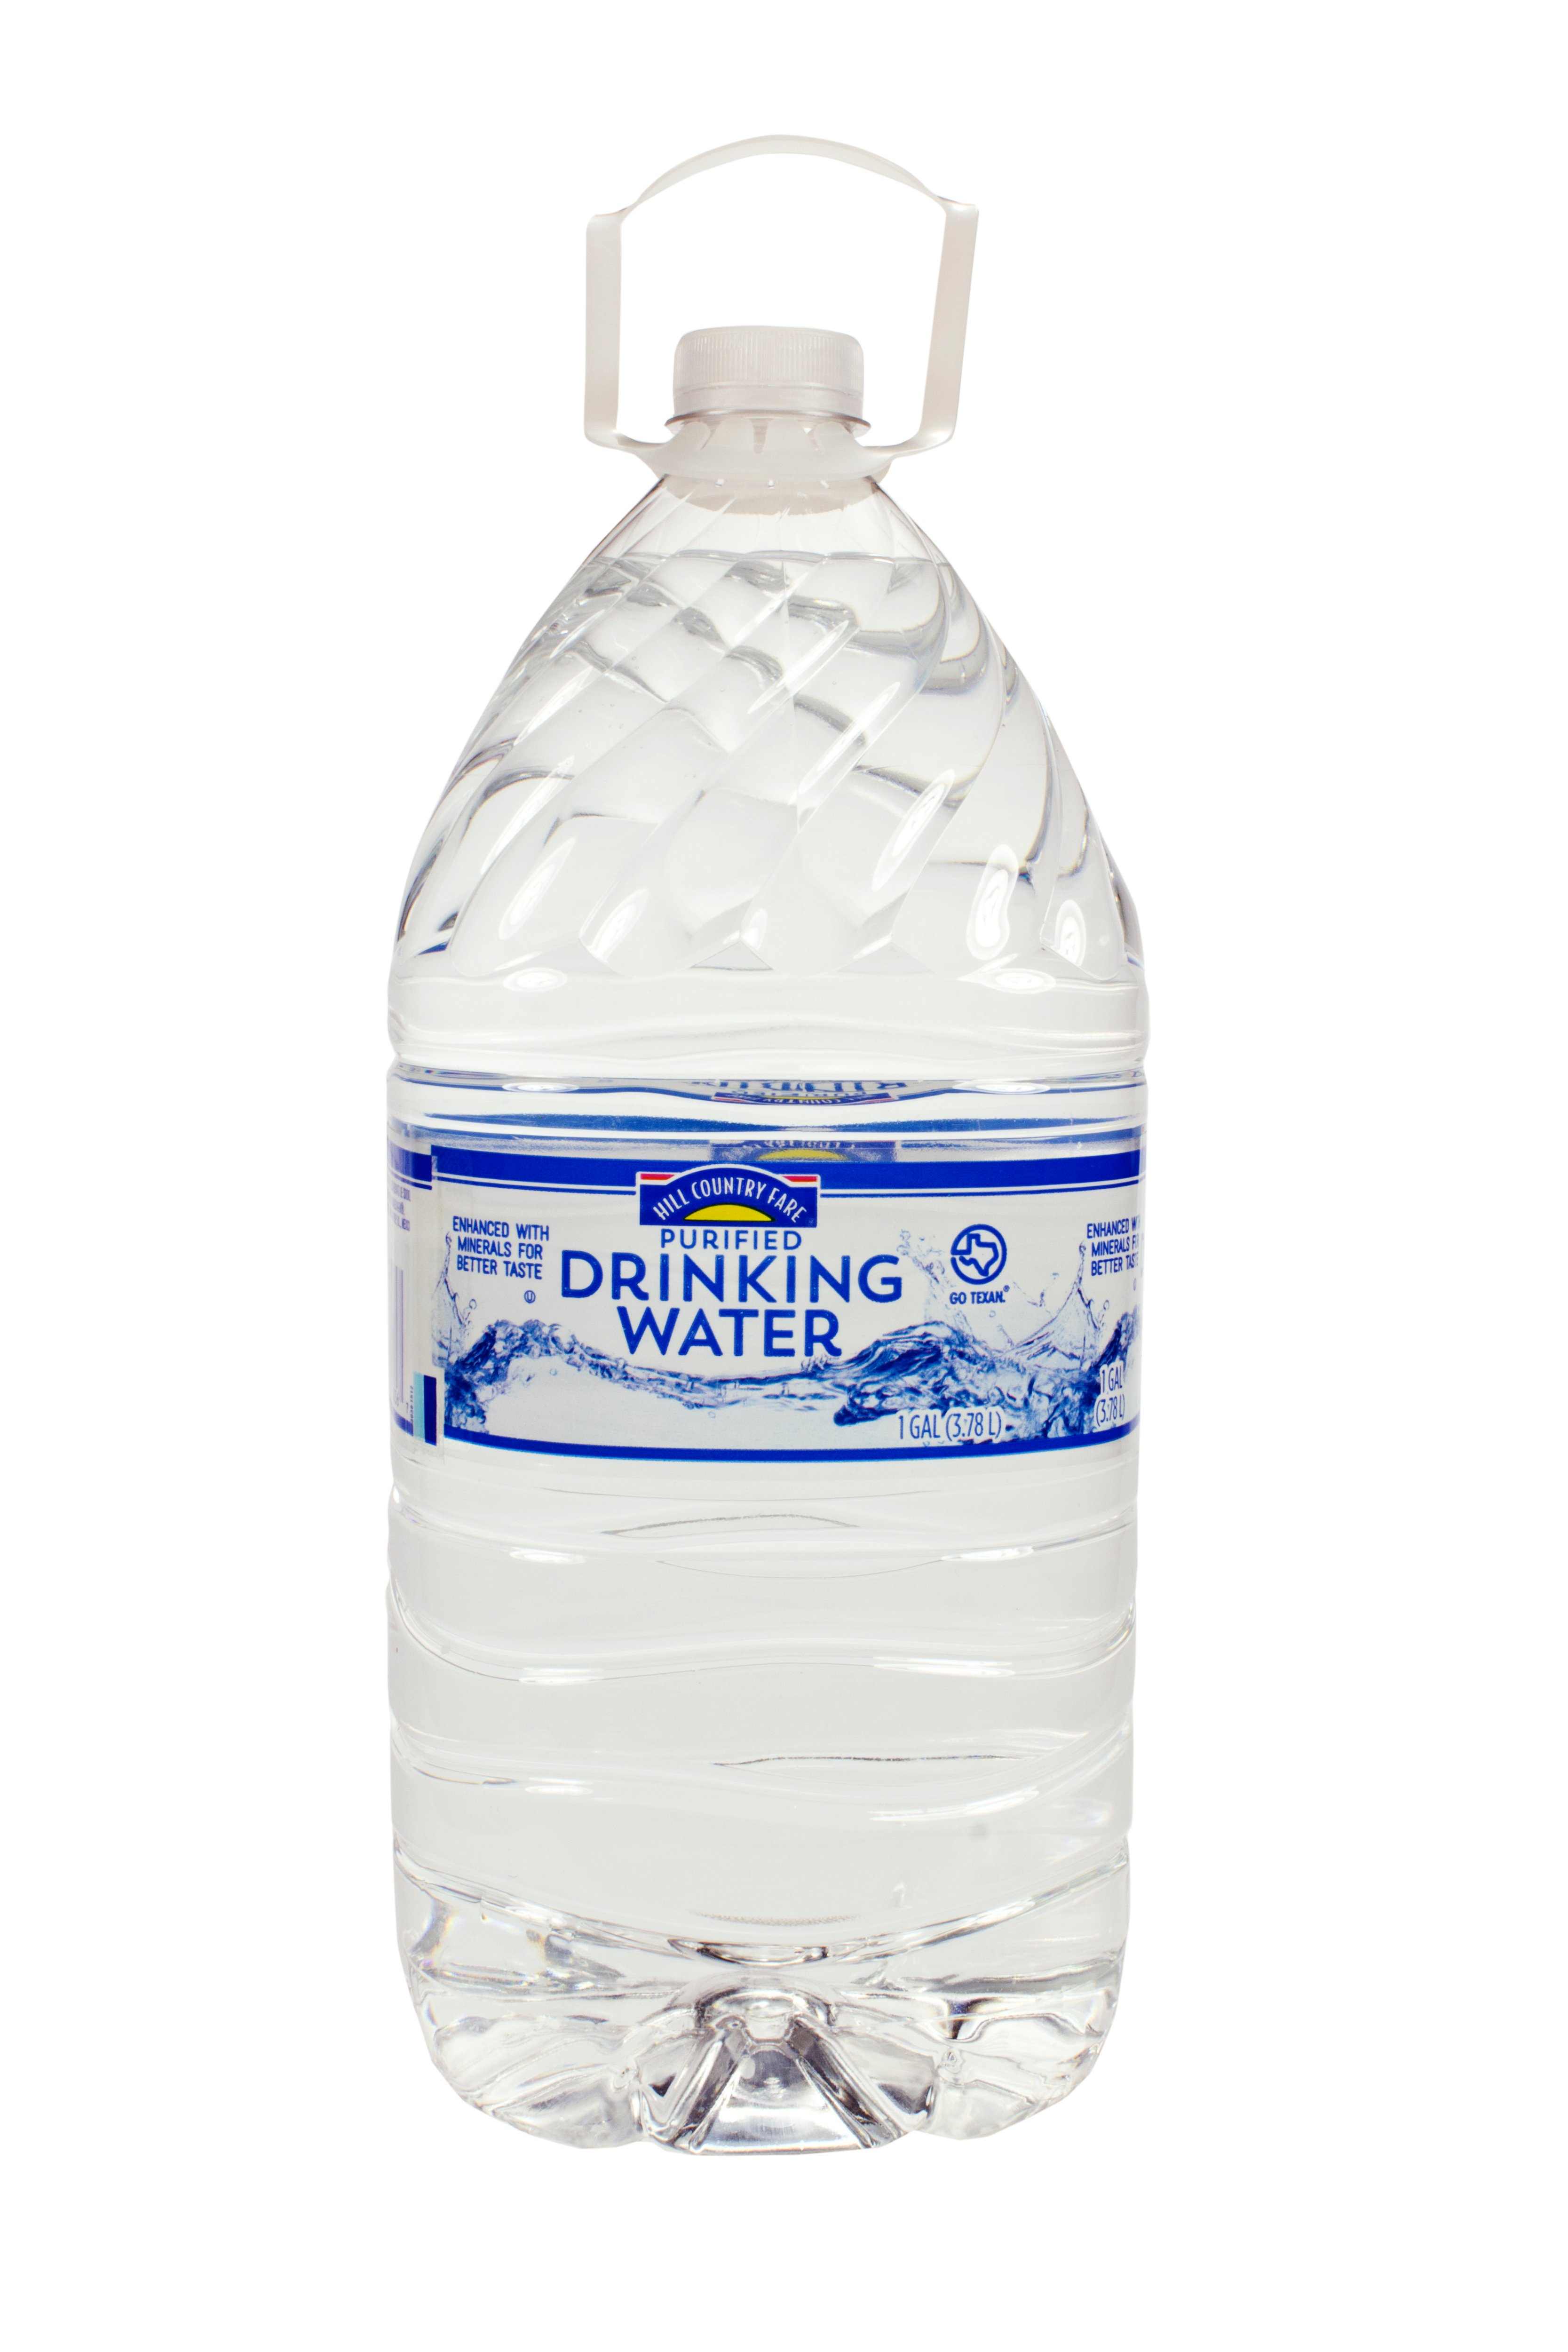 Purifying Drinking Water Hill Country Fare Purified Drinking Water Shop Water At Heb